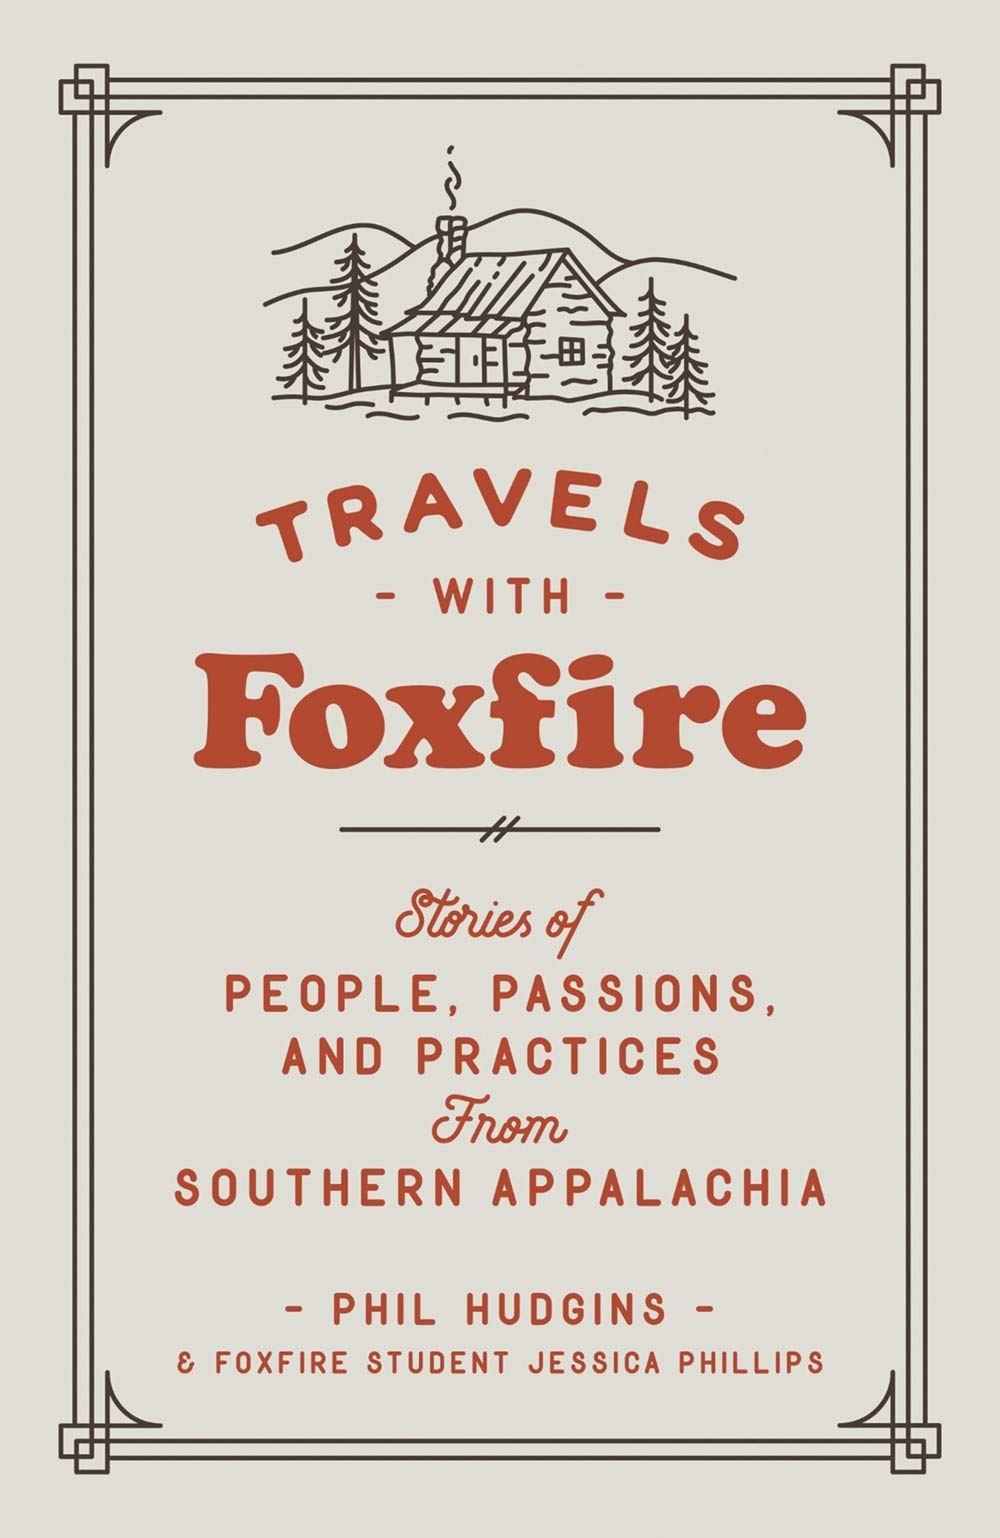 Travels with Foxfire: Stories of People, Passions, and Practices from Southern Appalachia (Foxfire Series)